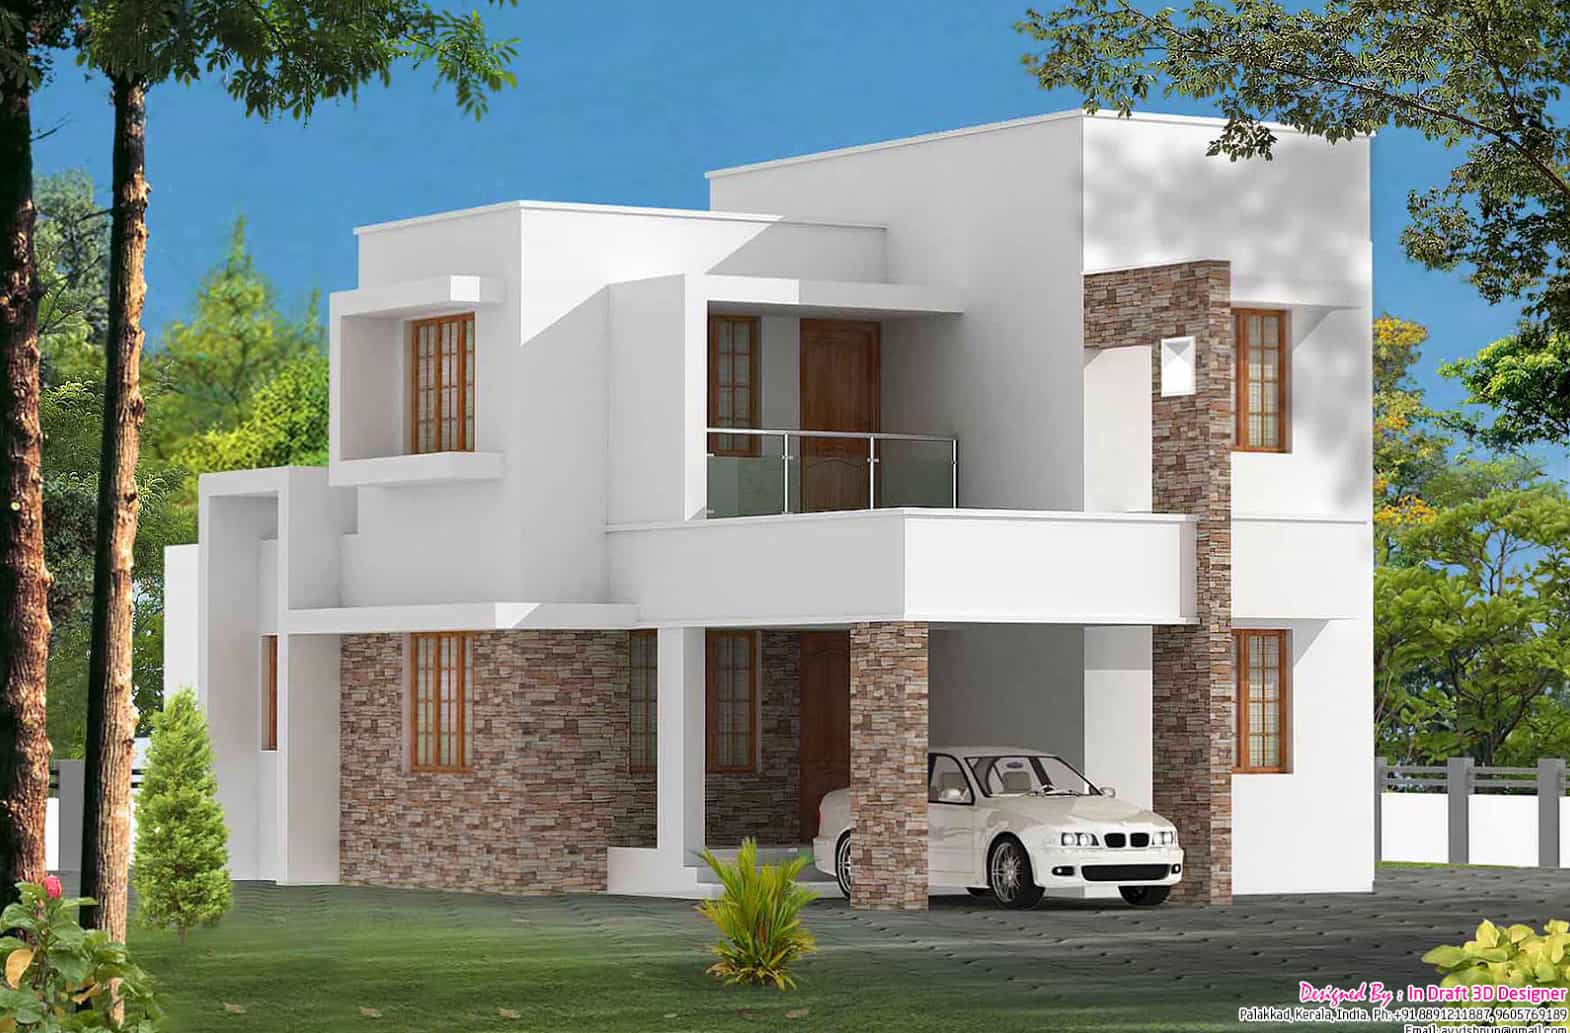 Simple 1700 3 bhk villa design - Modern villa designs ...